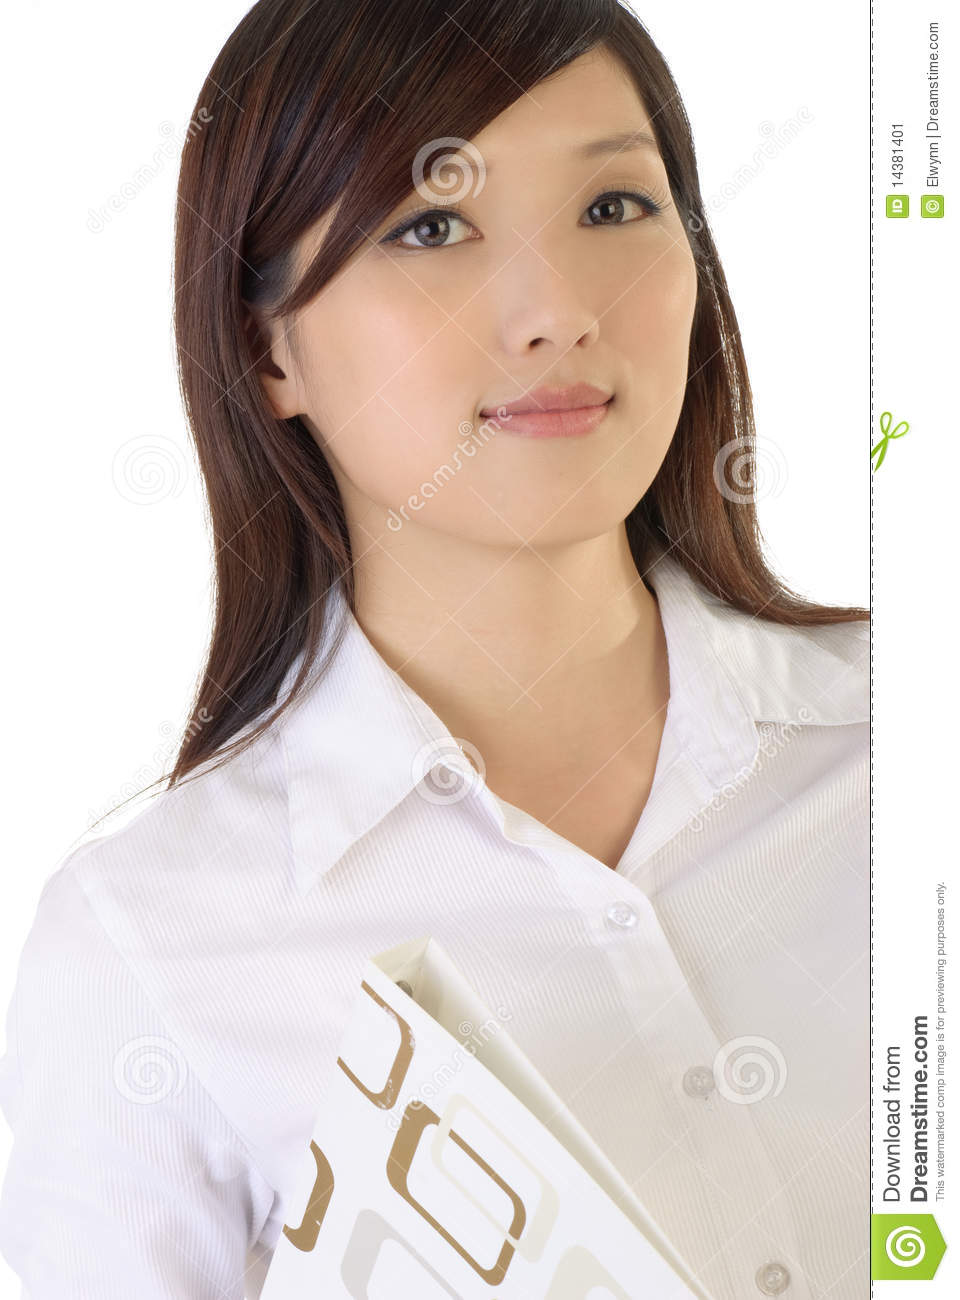 Successful Asian Business Woman Stock Image - Image: 14381401